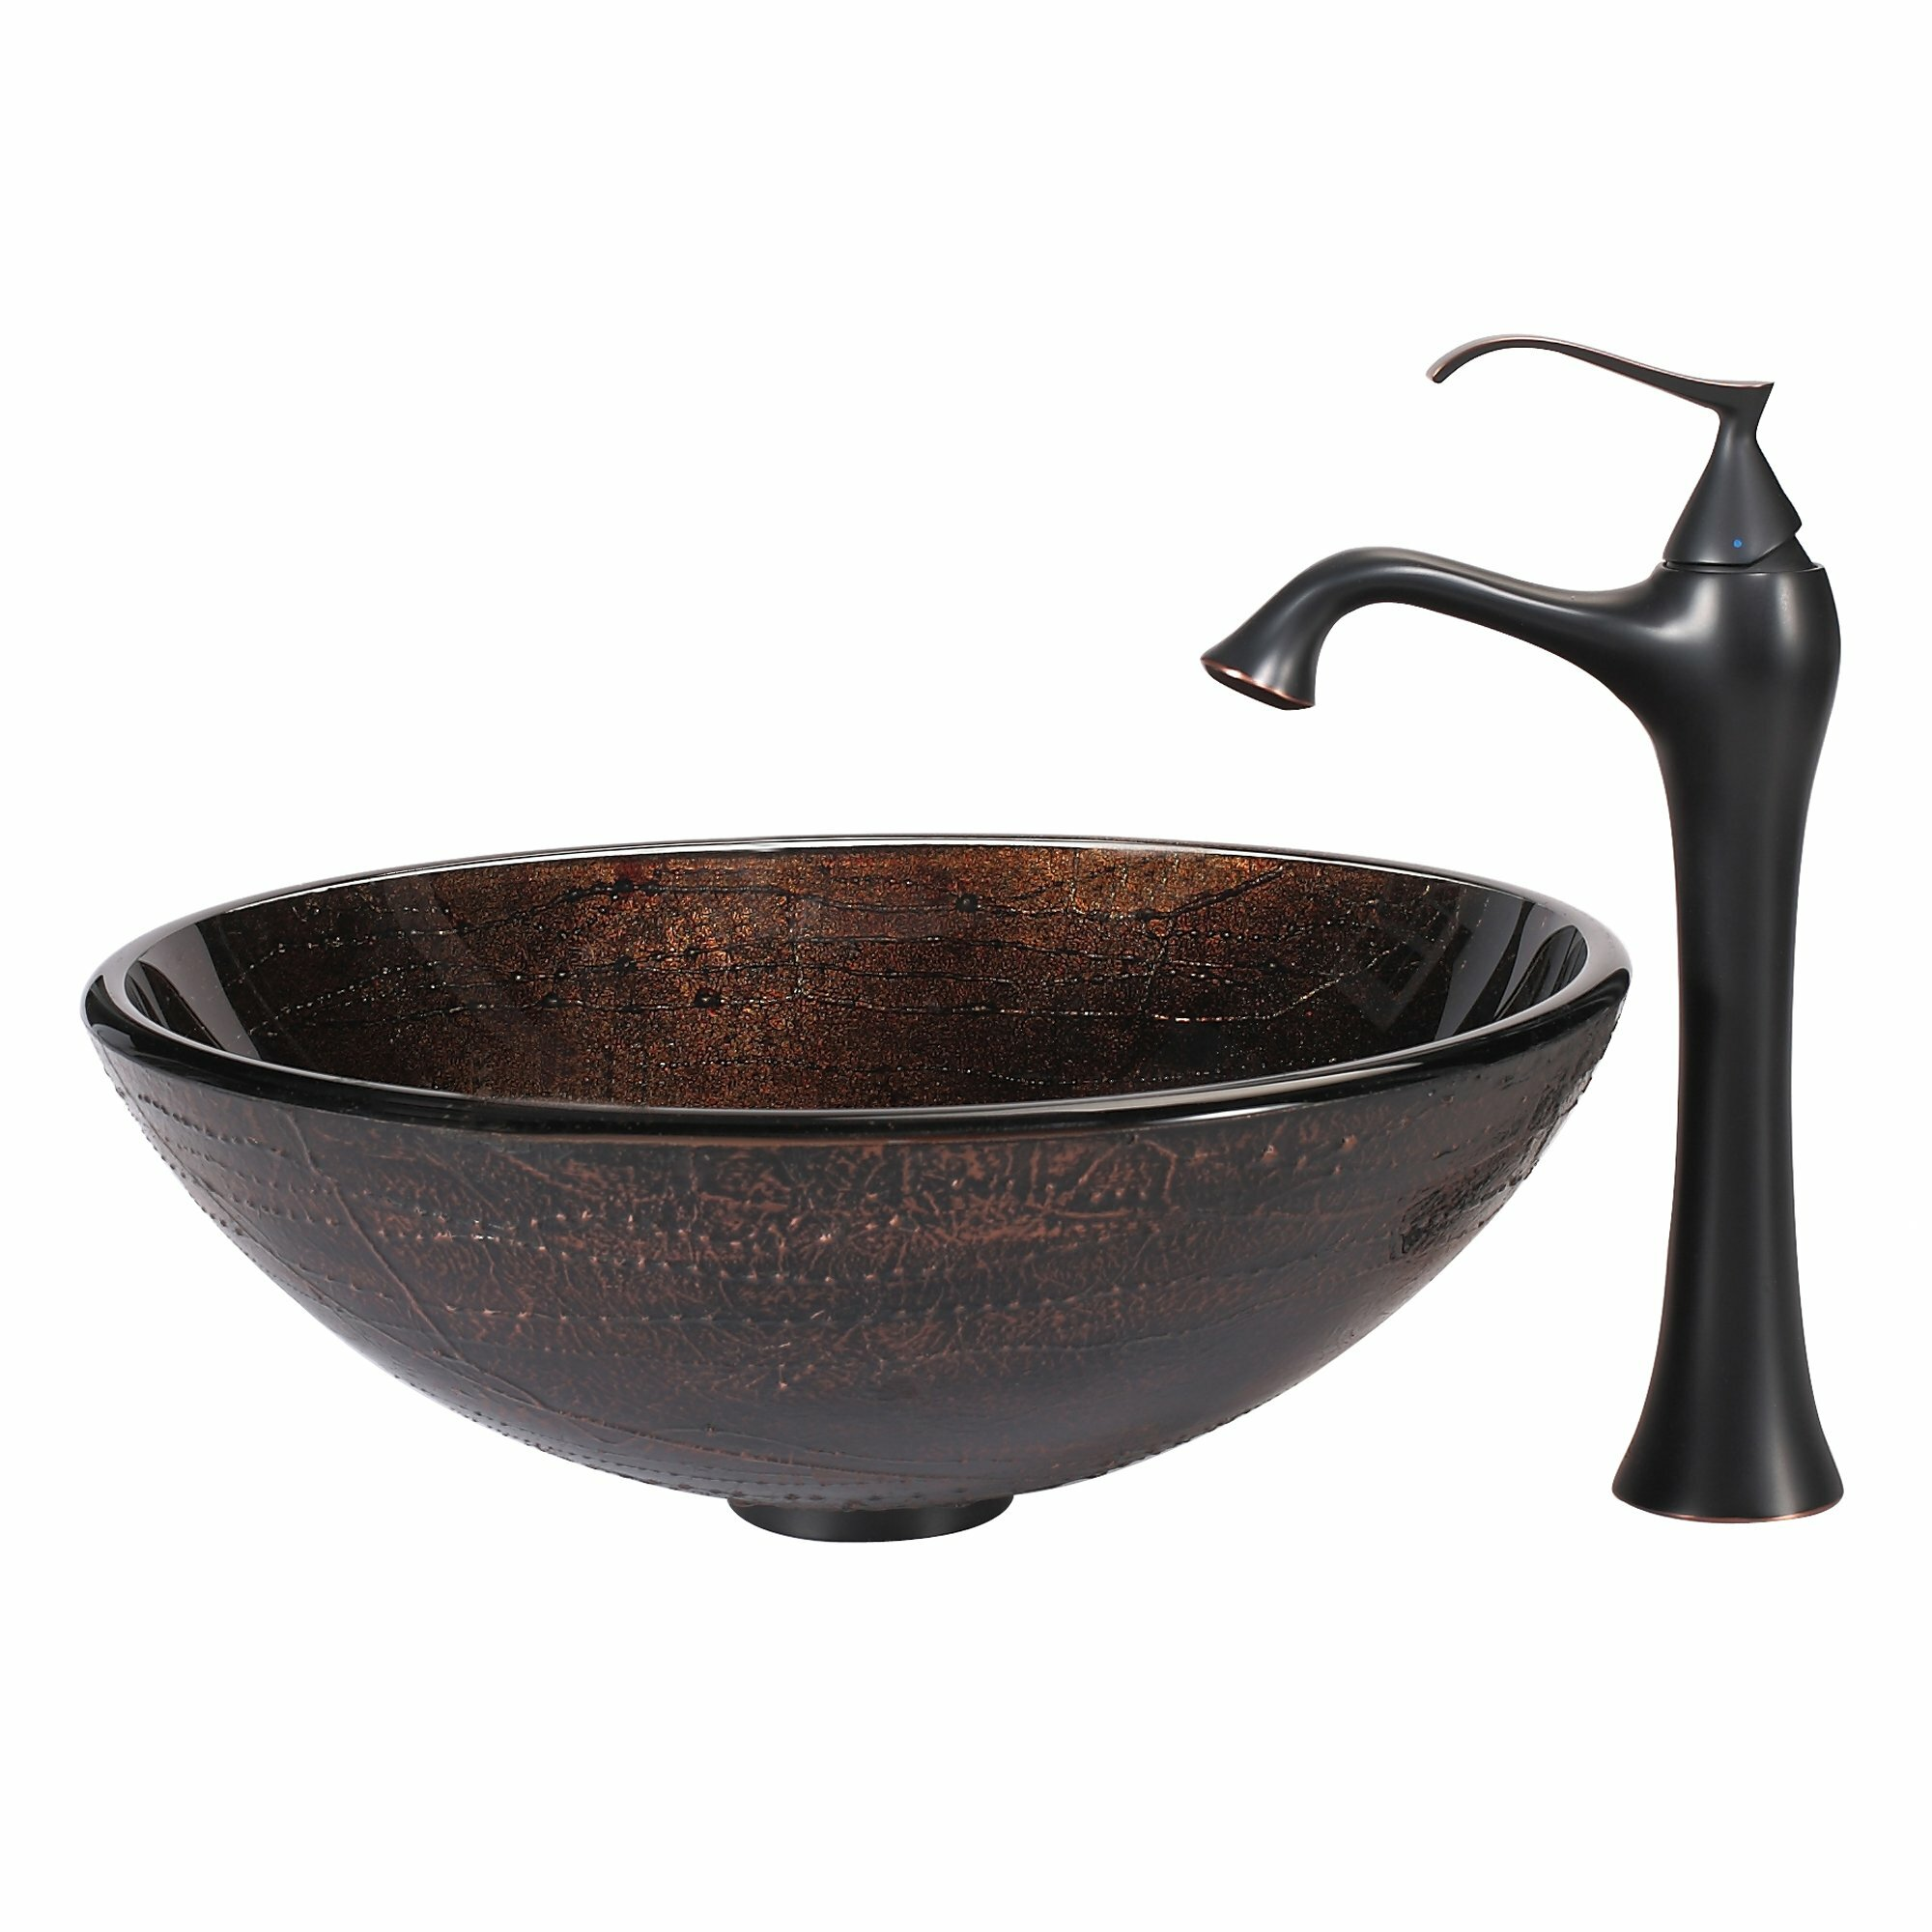 Copper Illusion Glass Vessel Sink and Ventus Faucet Wayfair